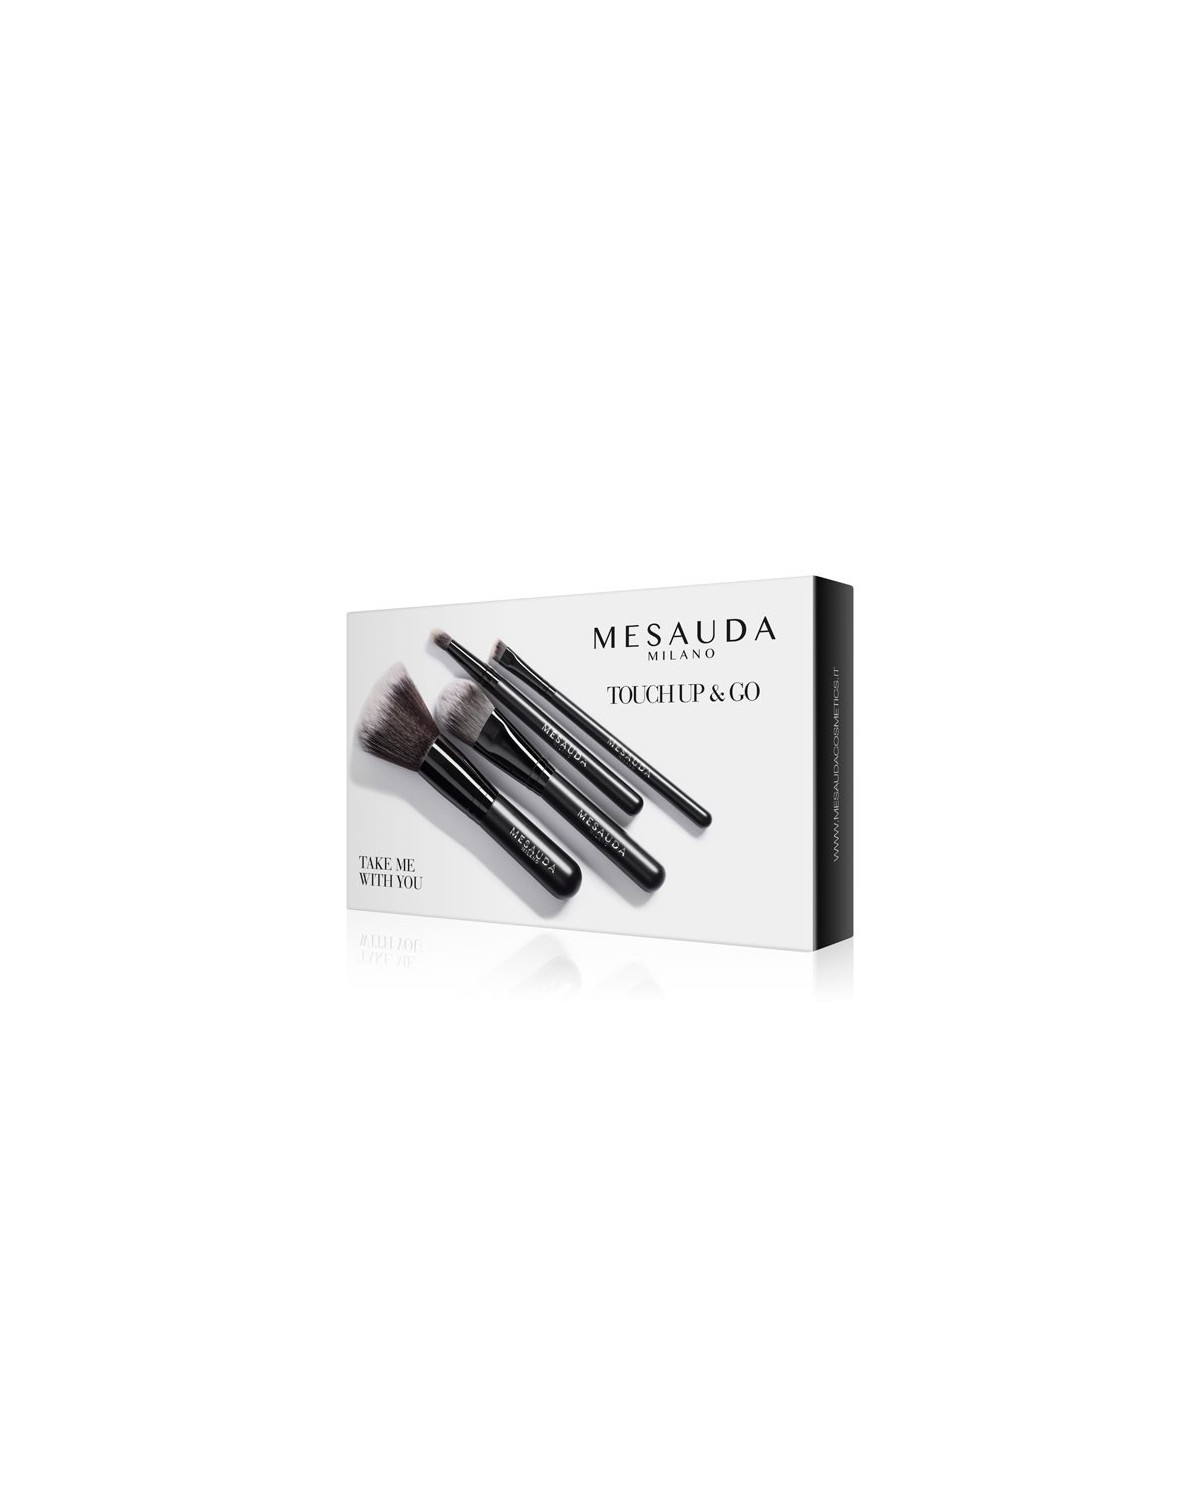 TAKE ME WITH YOU - TOUCH UP & GO Travel Kit Pennelli - Mesauda